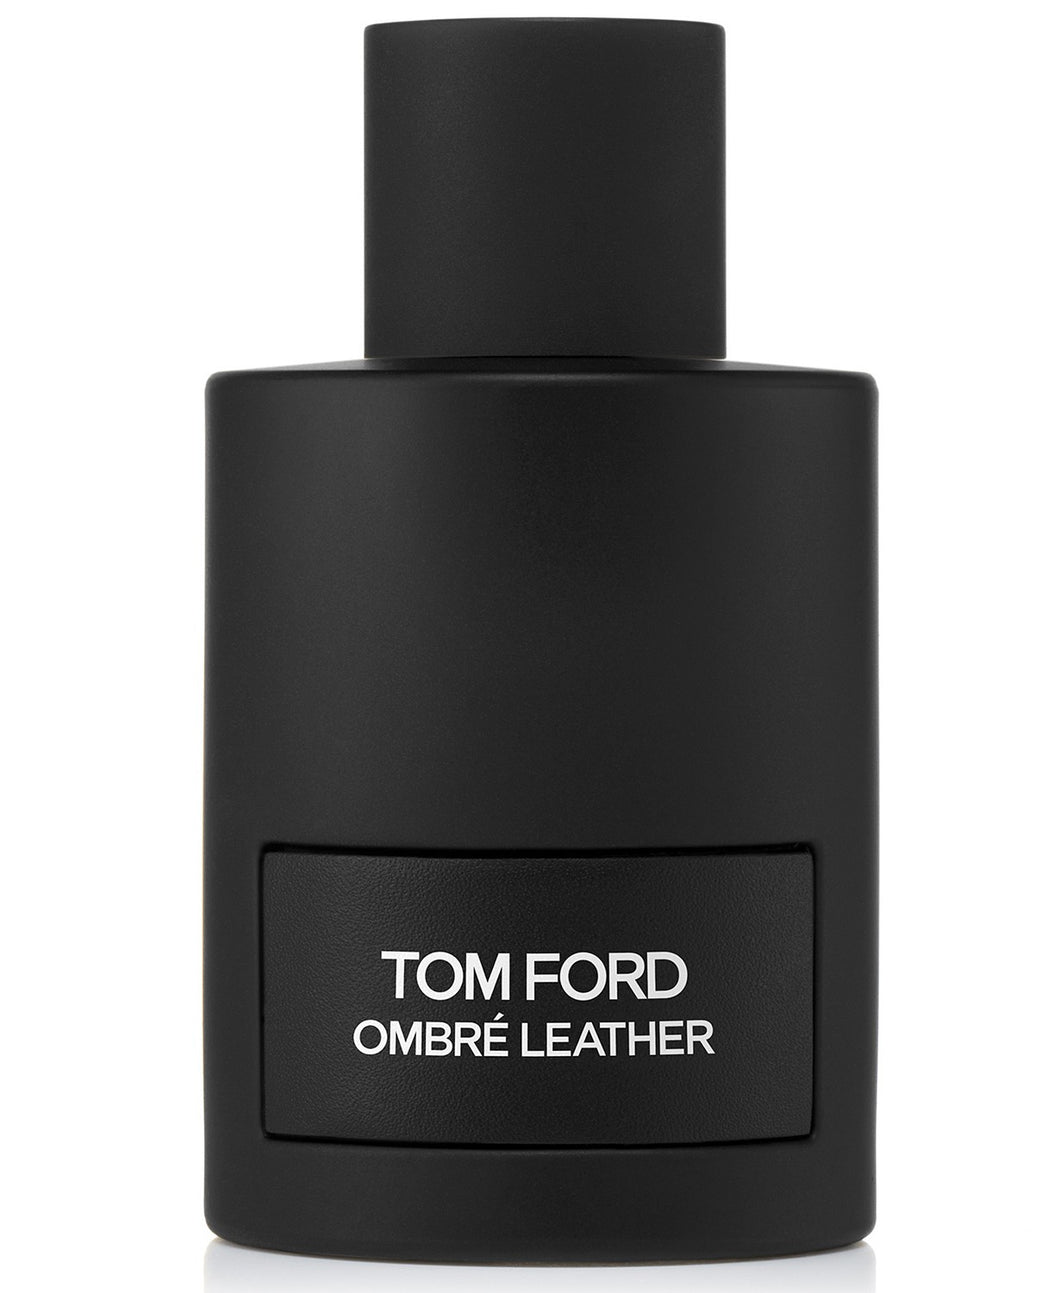 tom ford ombre leather edp 3.4oz for mens - alwaysspecialgifts.com